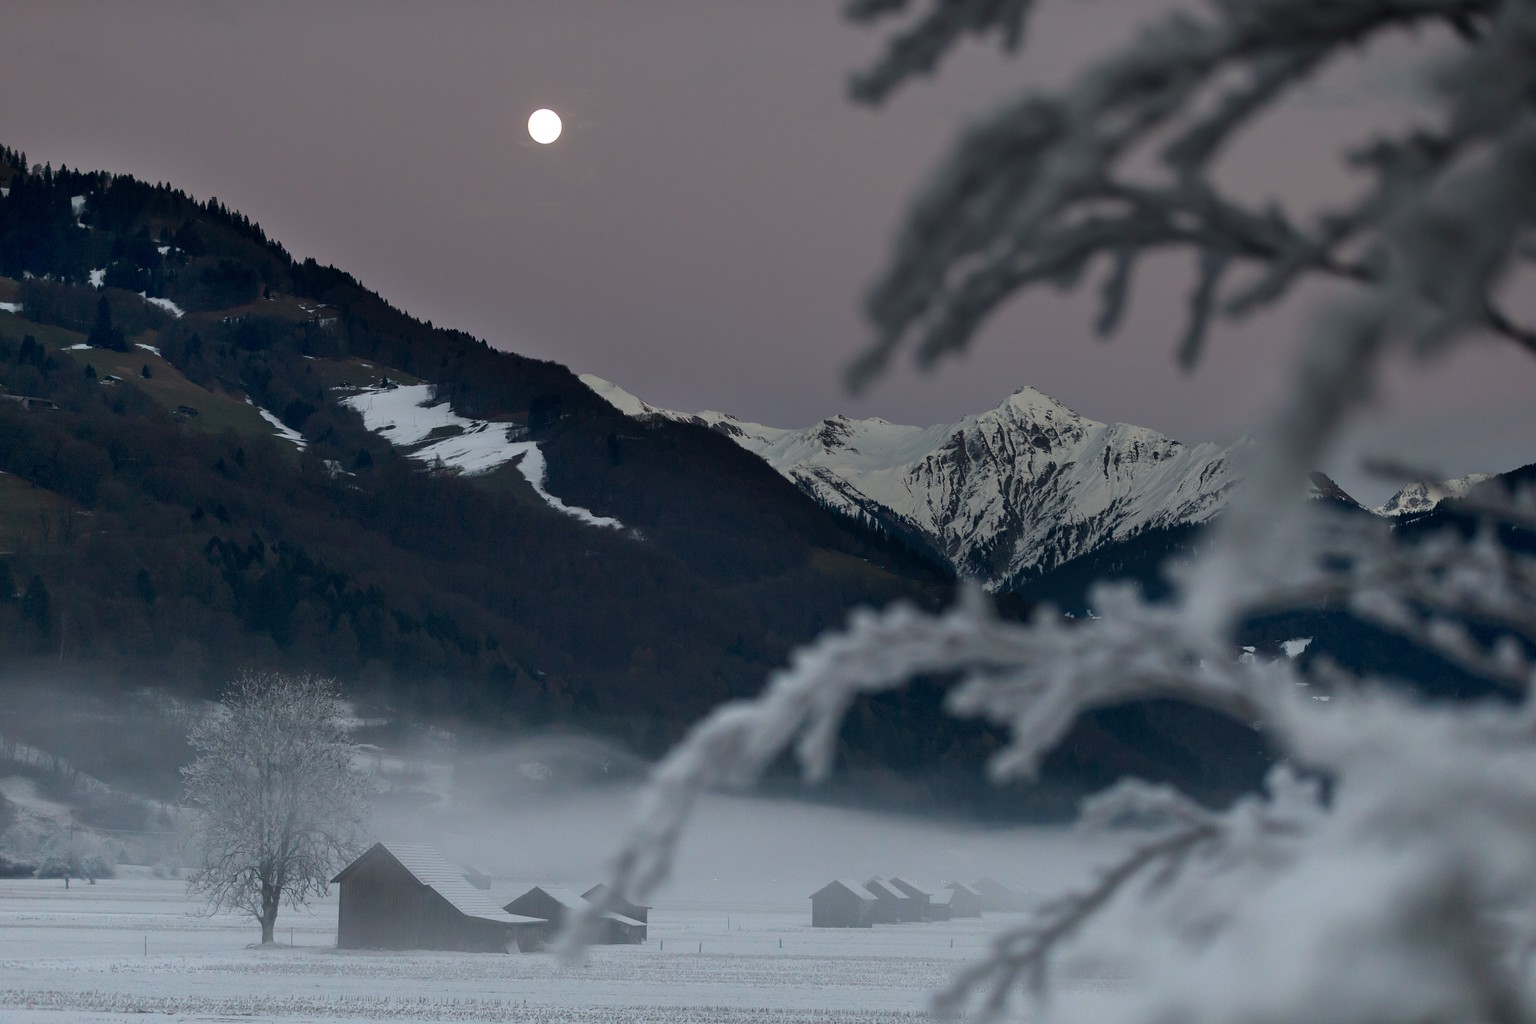 Der Mond erhellt die nebelverhangene Ebene in den Schwellenen in Gruesch im Vorderpraettigau, am Sonntag, 15. Dezember 2013. (KEYSTONE/Arno Balzarini) 